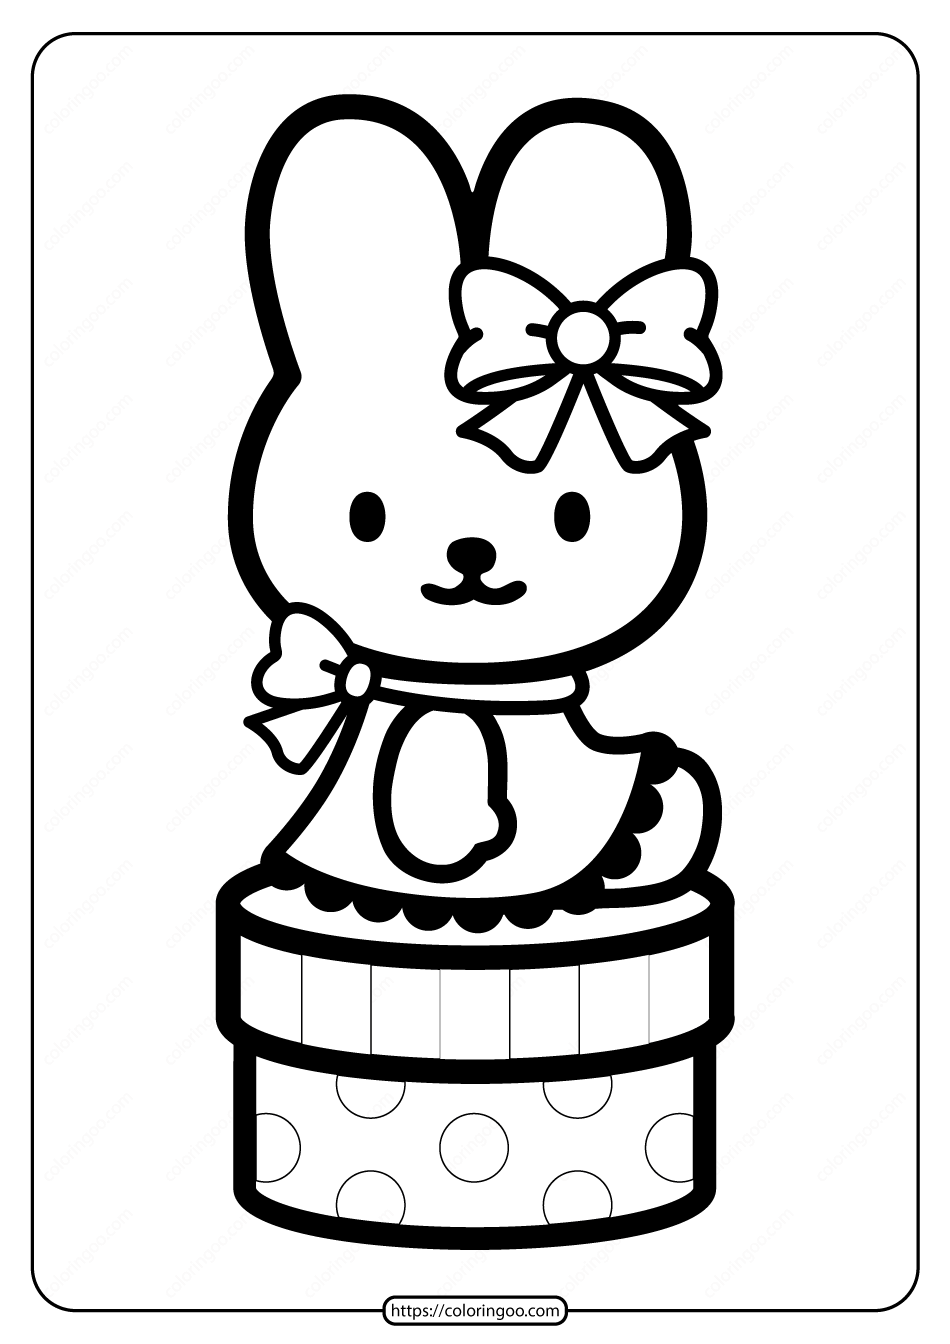 Printable Hello Kitty on the Box Coloring Page